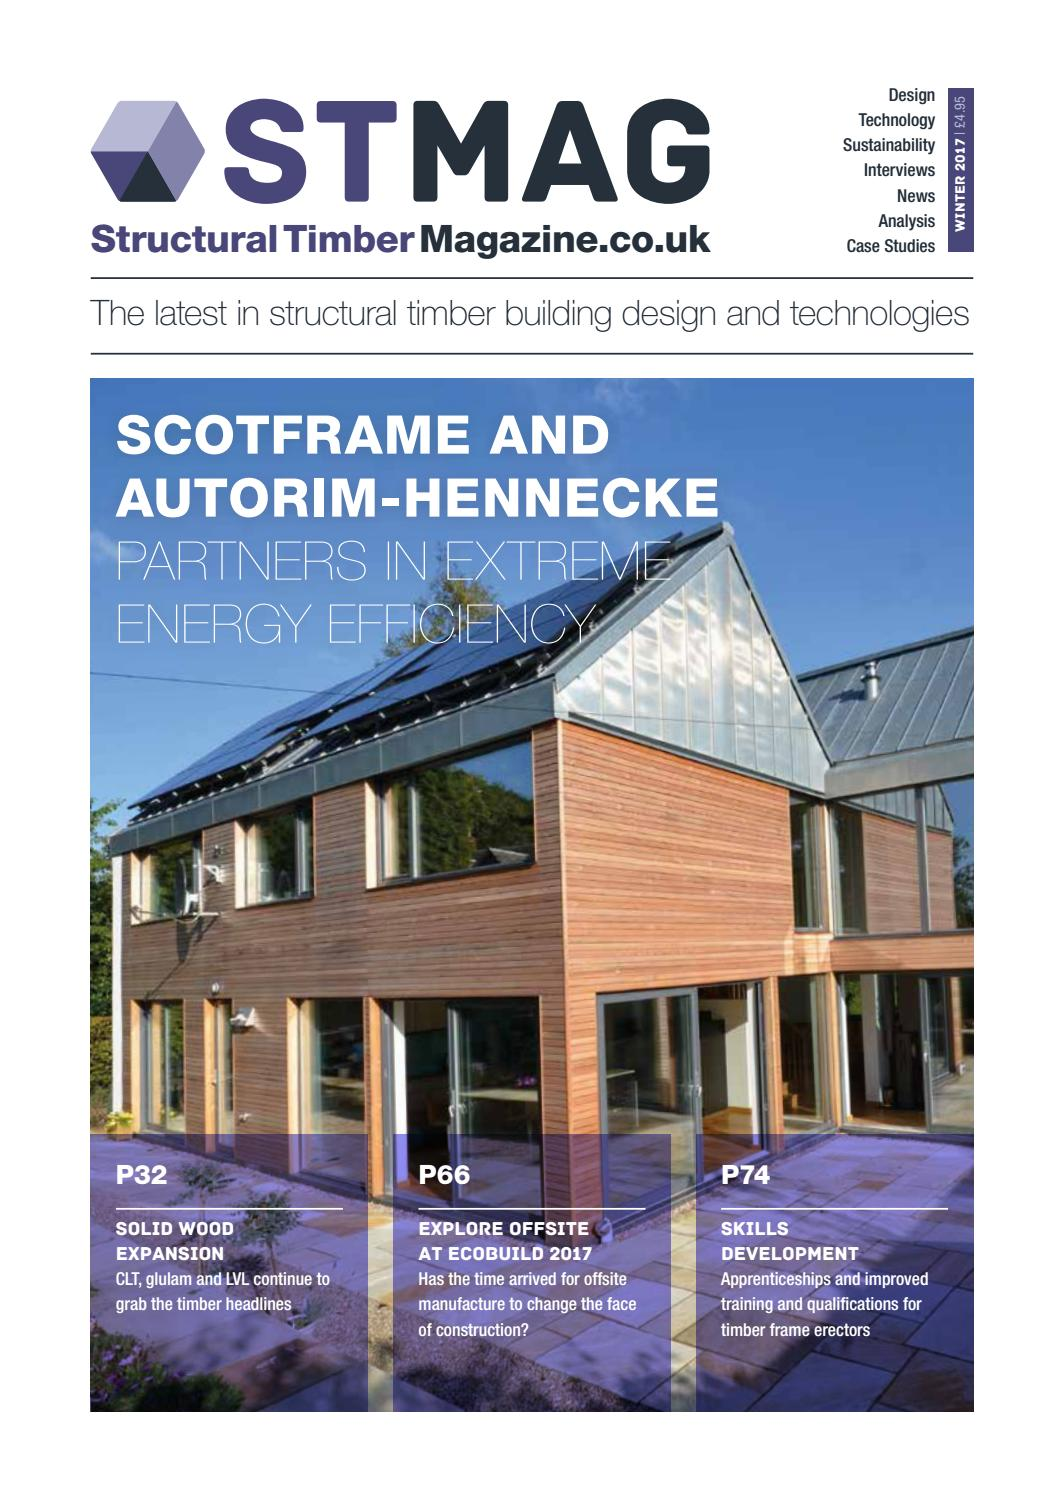 Structural timber magazine winter issue 2017 by radar communications issuu